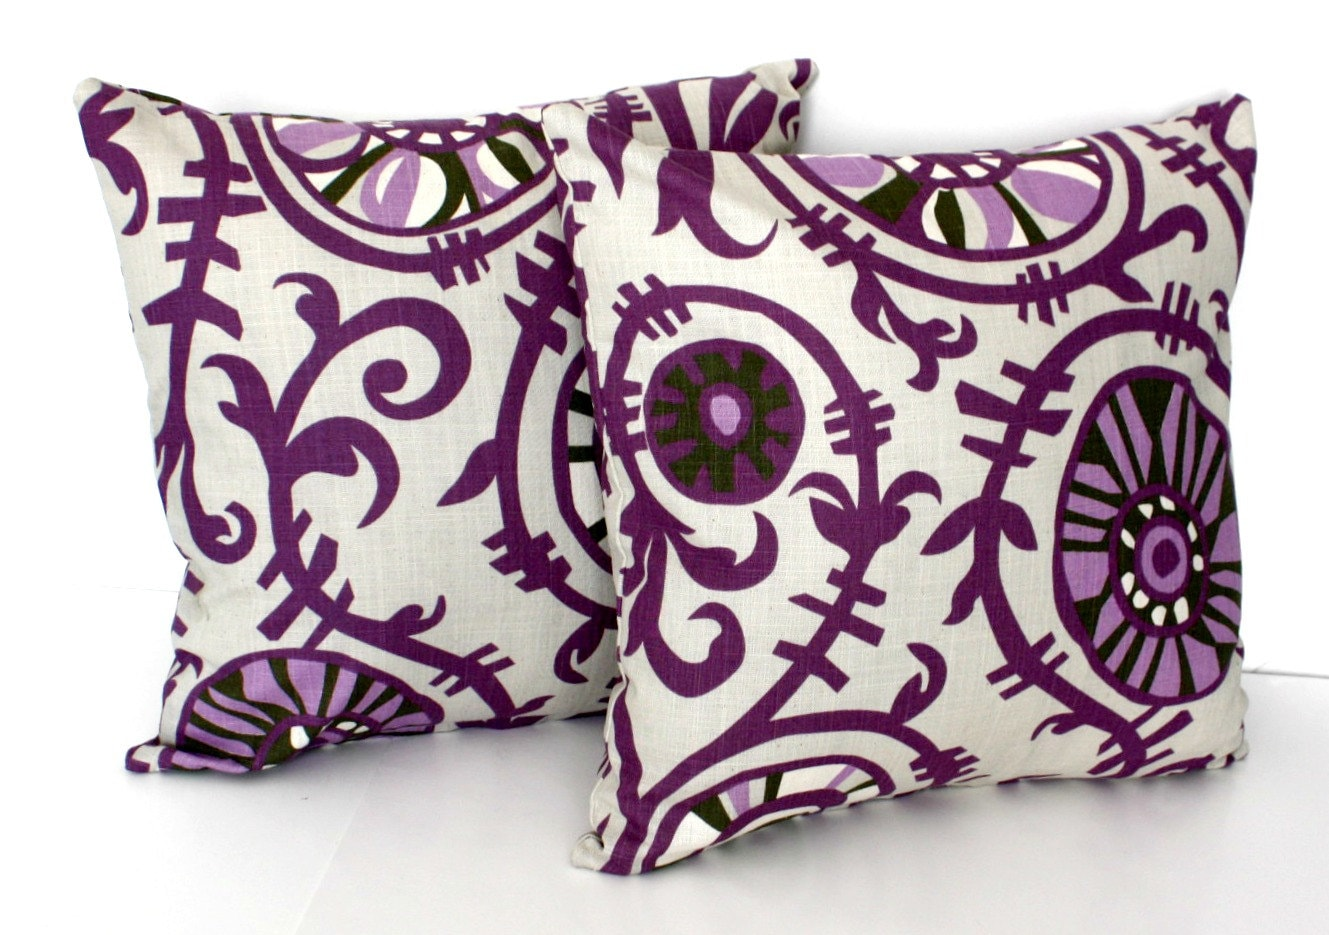 2 decorative pillow covers throw pillows accent by